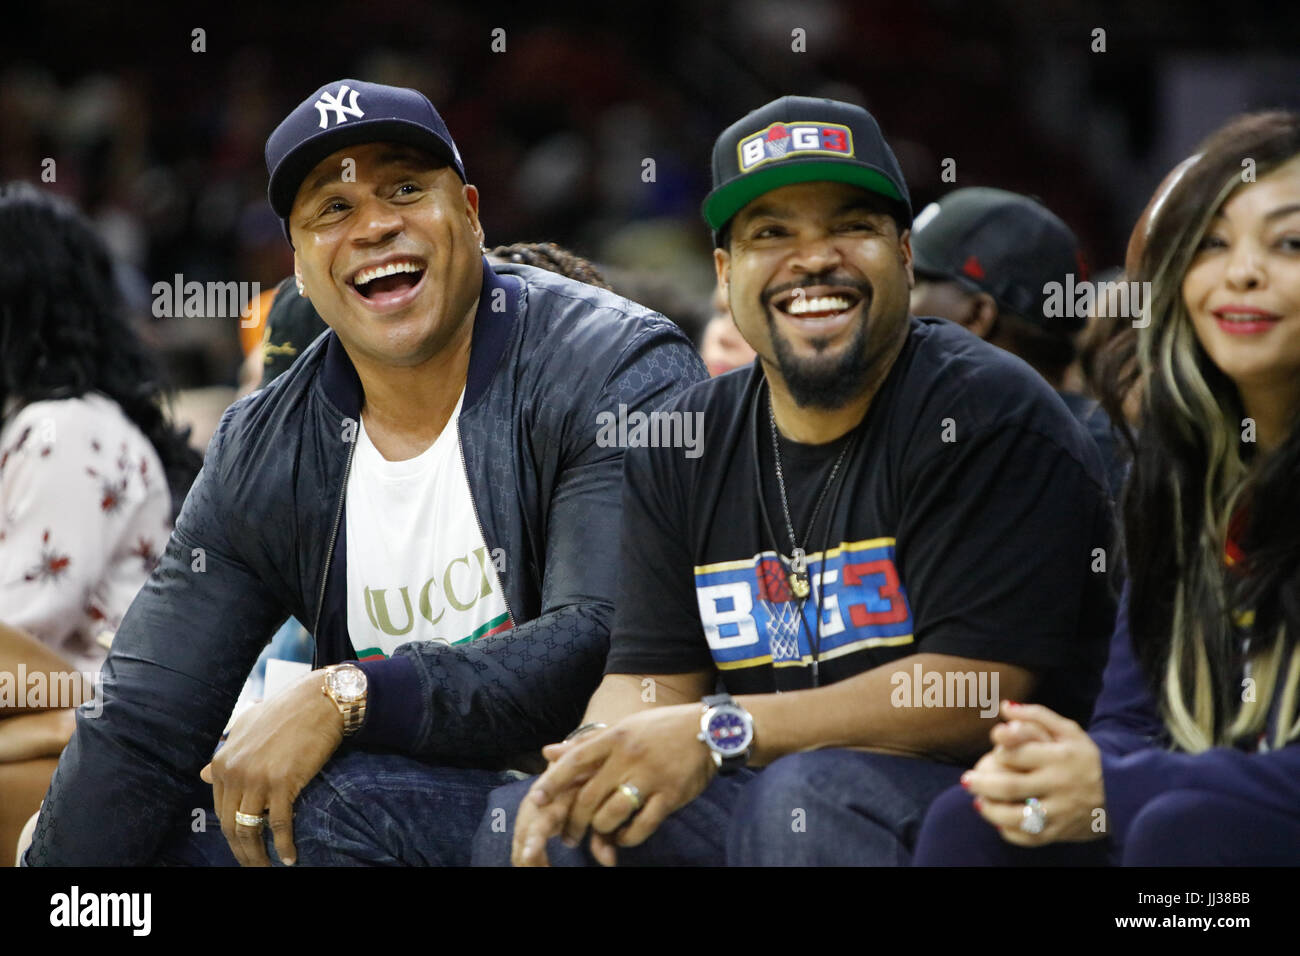 LL Cool J Ice Cube attend Big 3 league Phiily,PA 7/16/17 Stock Photo